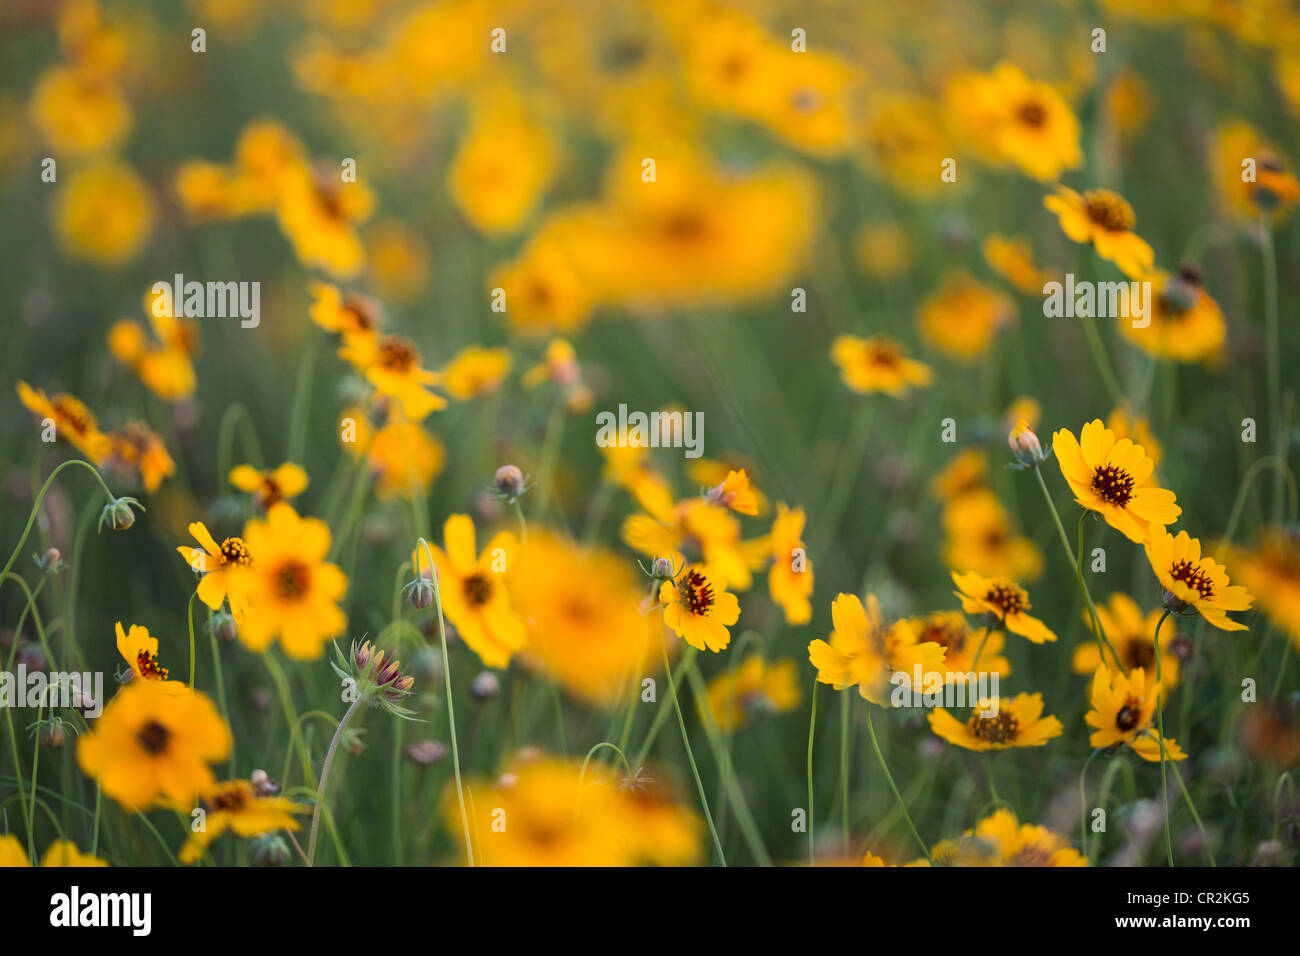 A Field Of Yellow Tickseed Sunflowers In Austin Texas Stock Photo